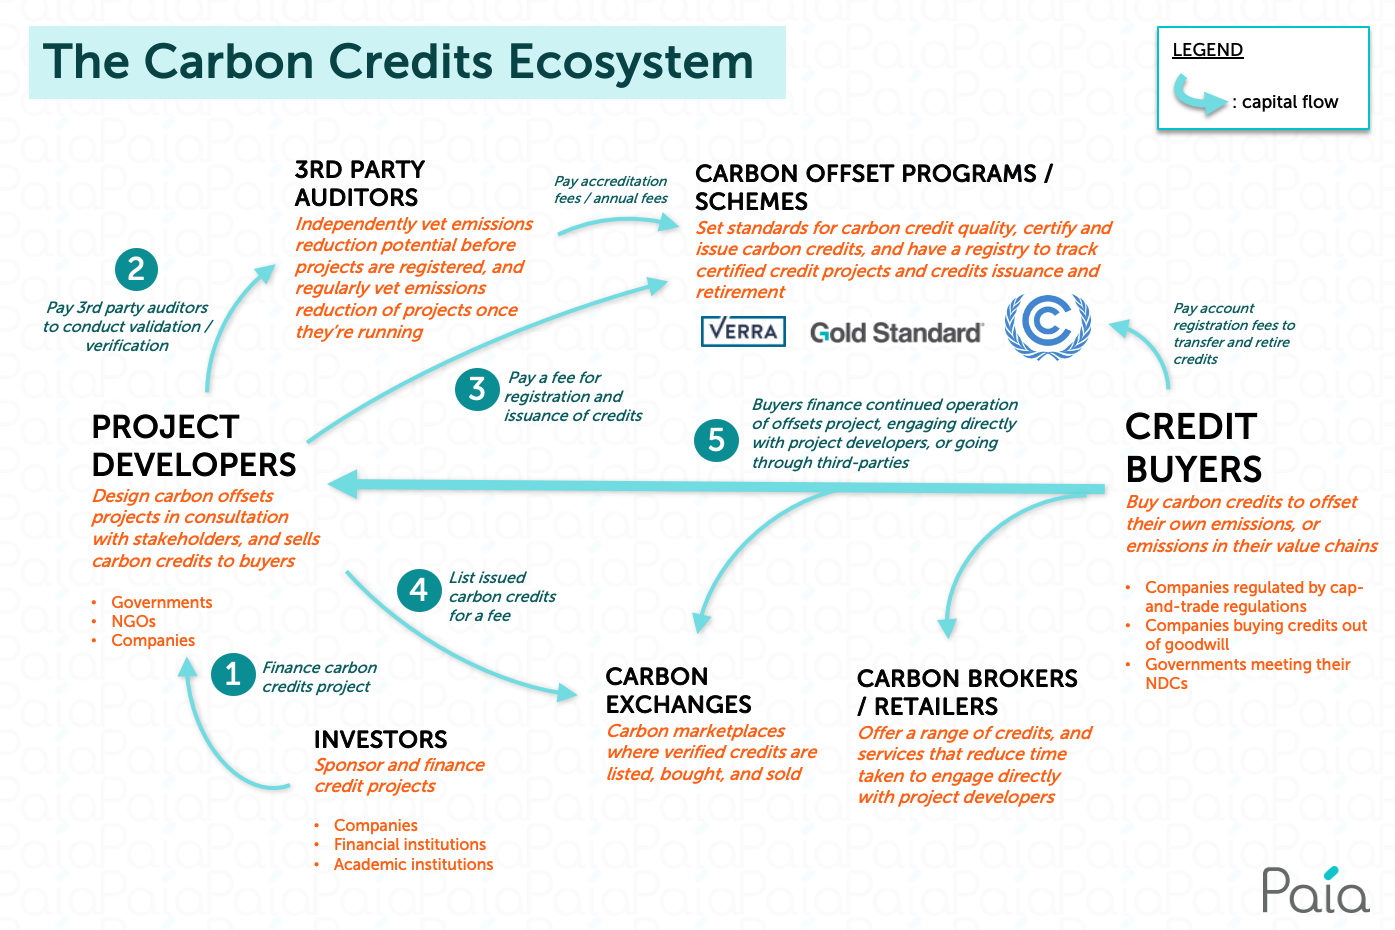 The Carbon Credits Ecosystem infographic